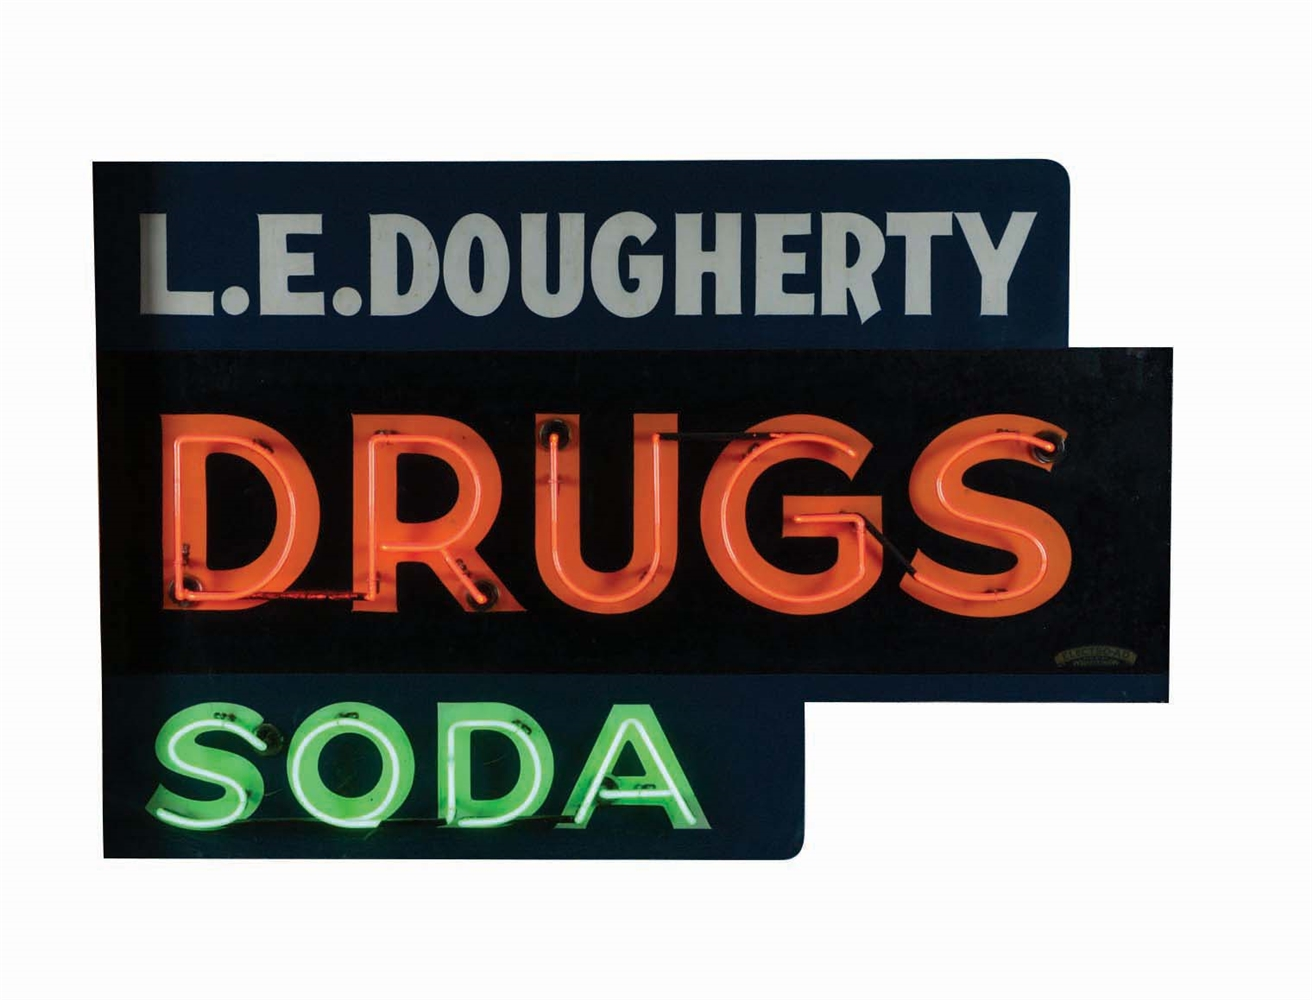 DRUGS AND SODA NEON SIGN.